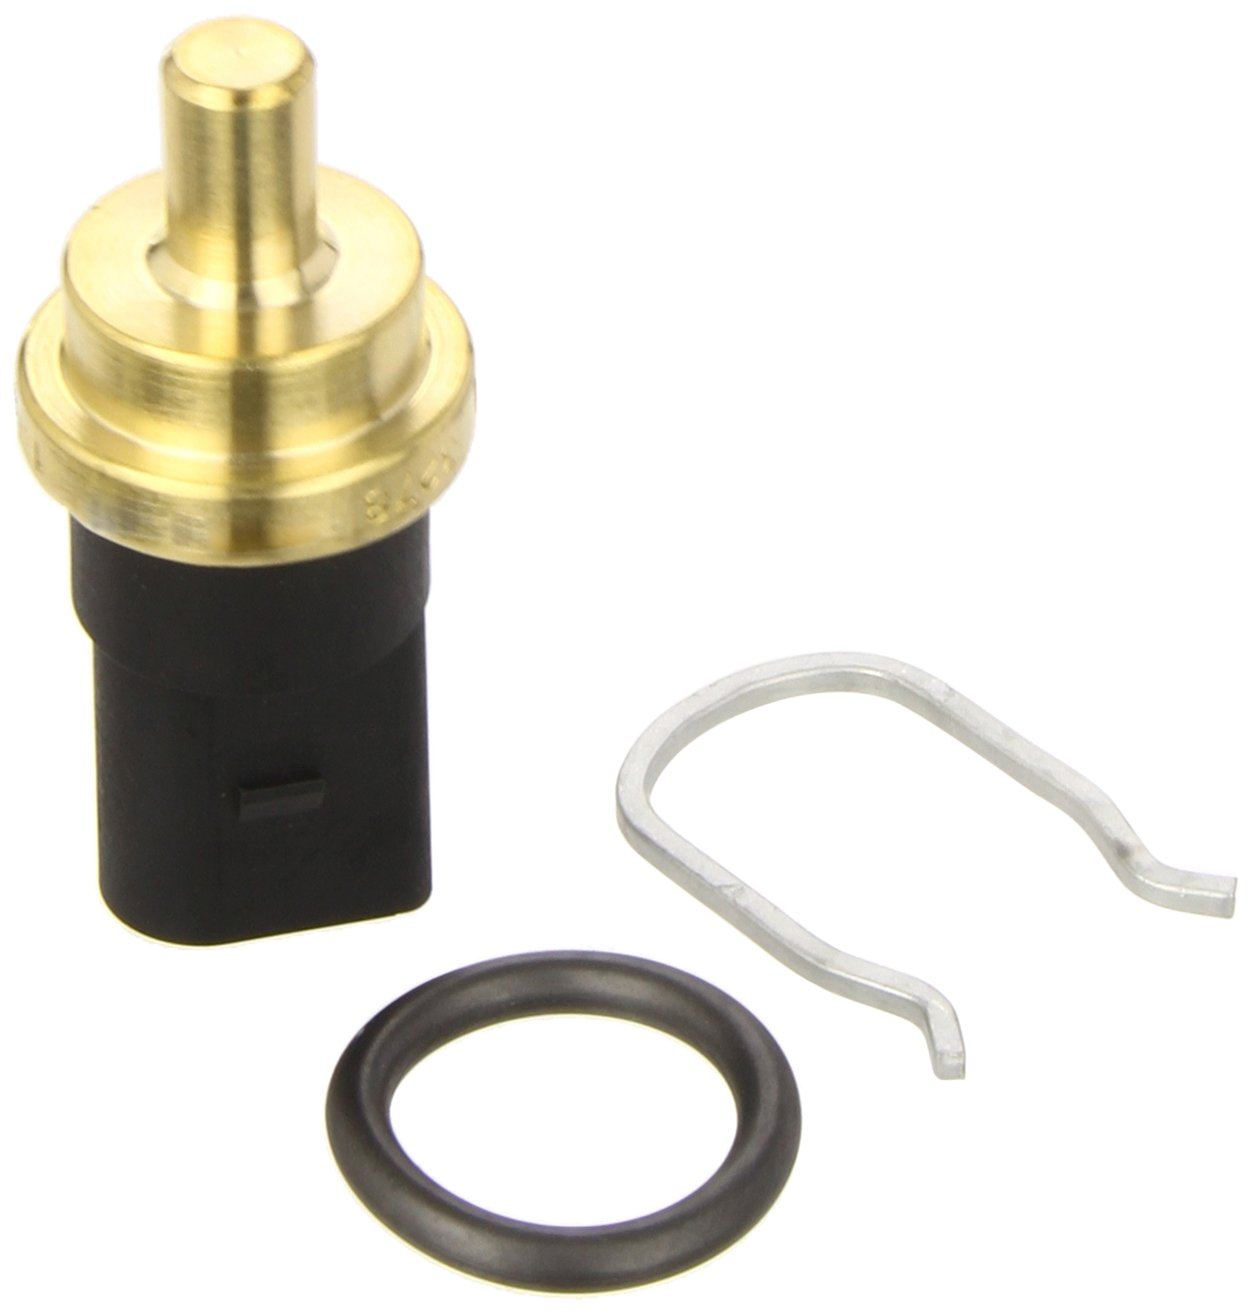 HELLA 6PT 009 309-331 Sensor, coolant temperature, Number of connectors 2, with seal, with lock ring Hella KGaA Hueck & Co.